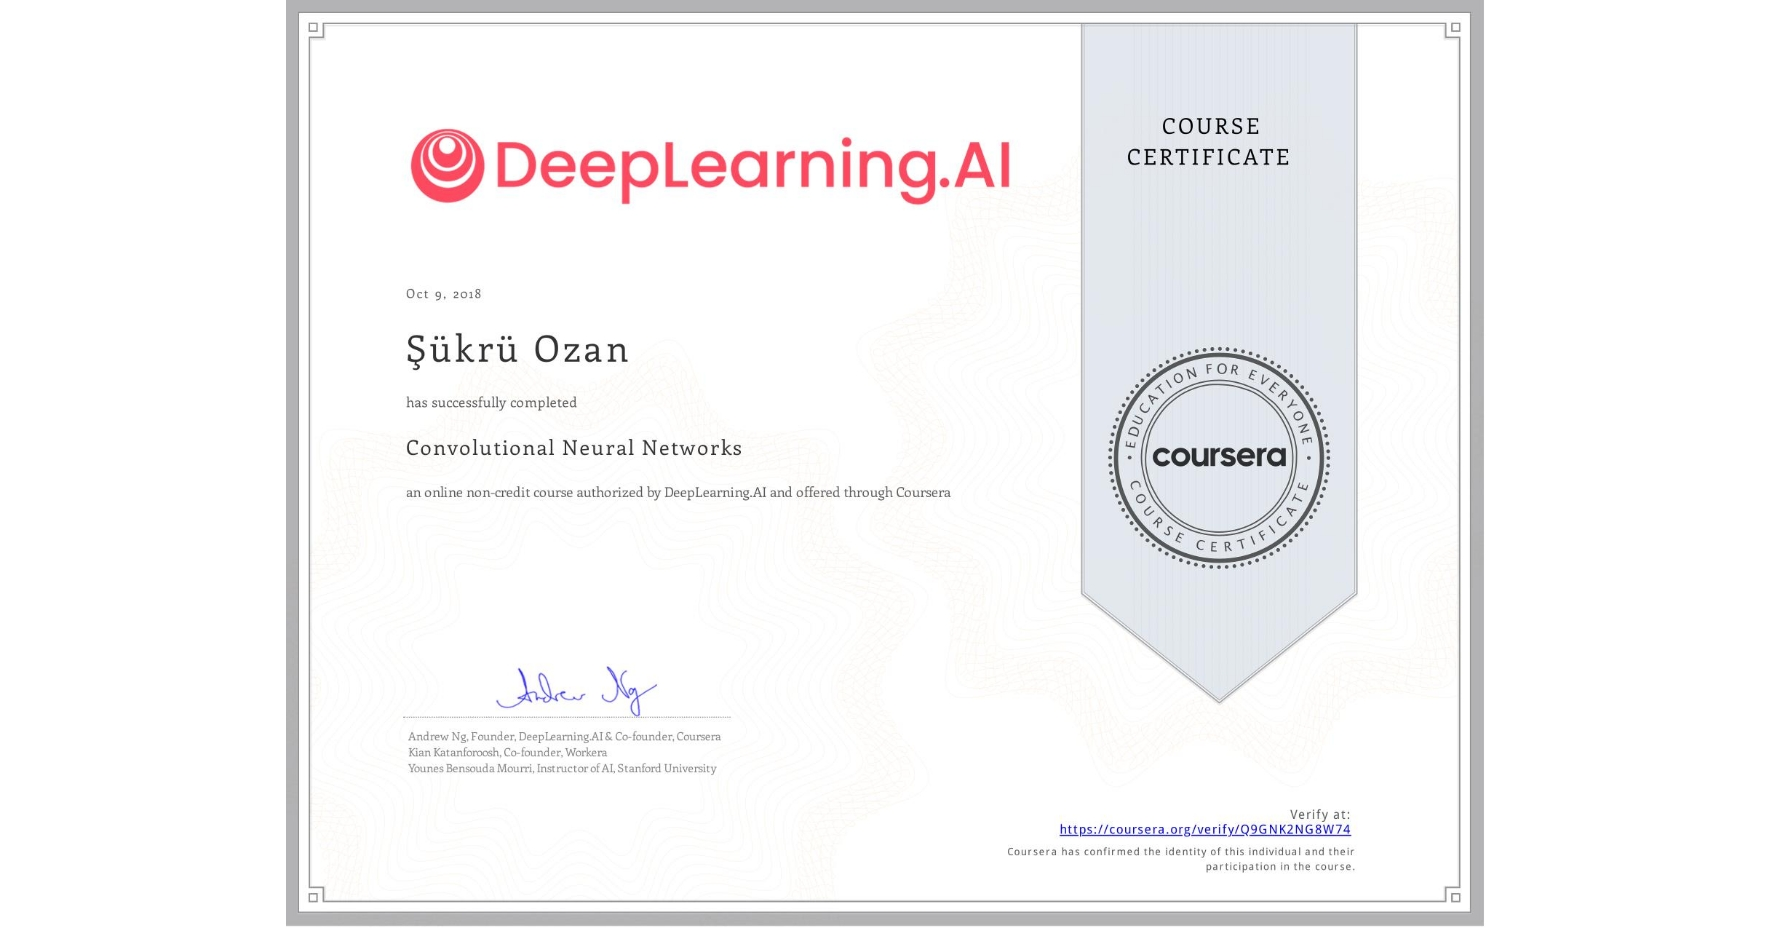 View certificate for Şükrü Ozan, Convolutional Neural Networks, an online non-credit course authorized by DeepLearning.AI and offered through Coursera